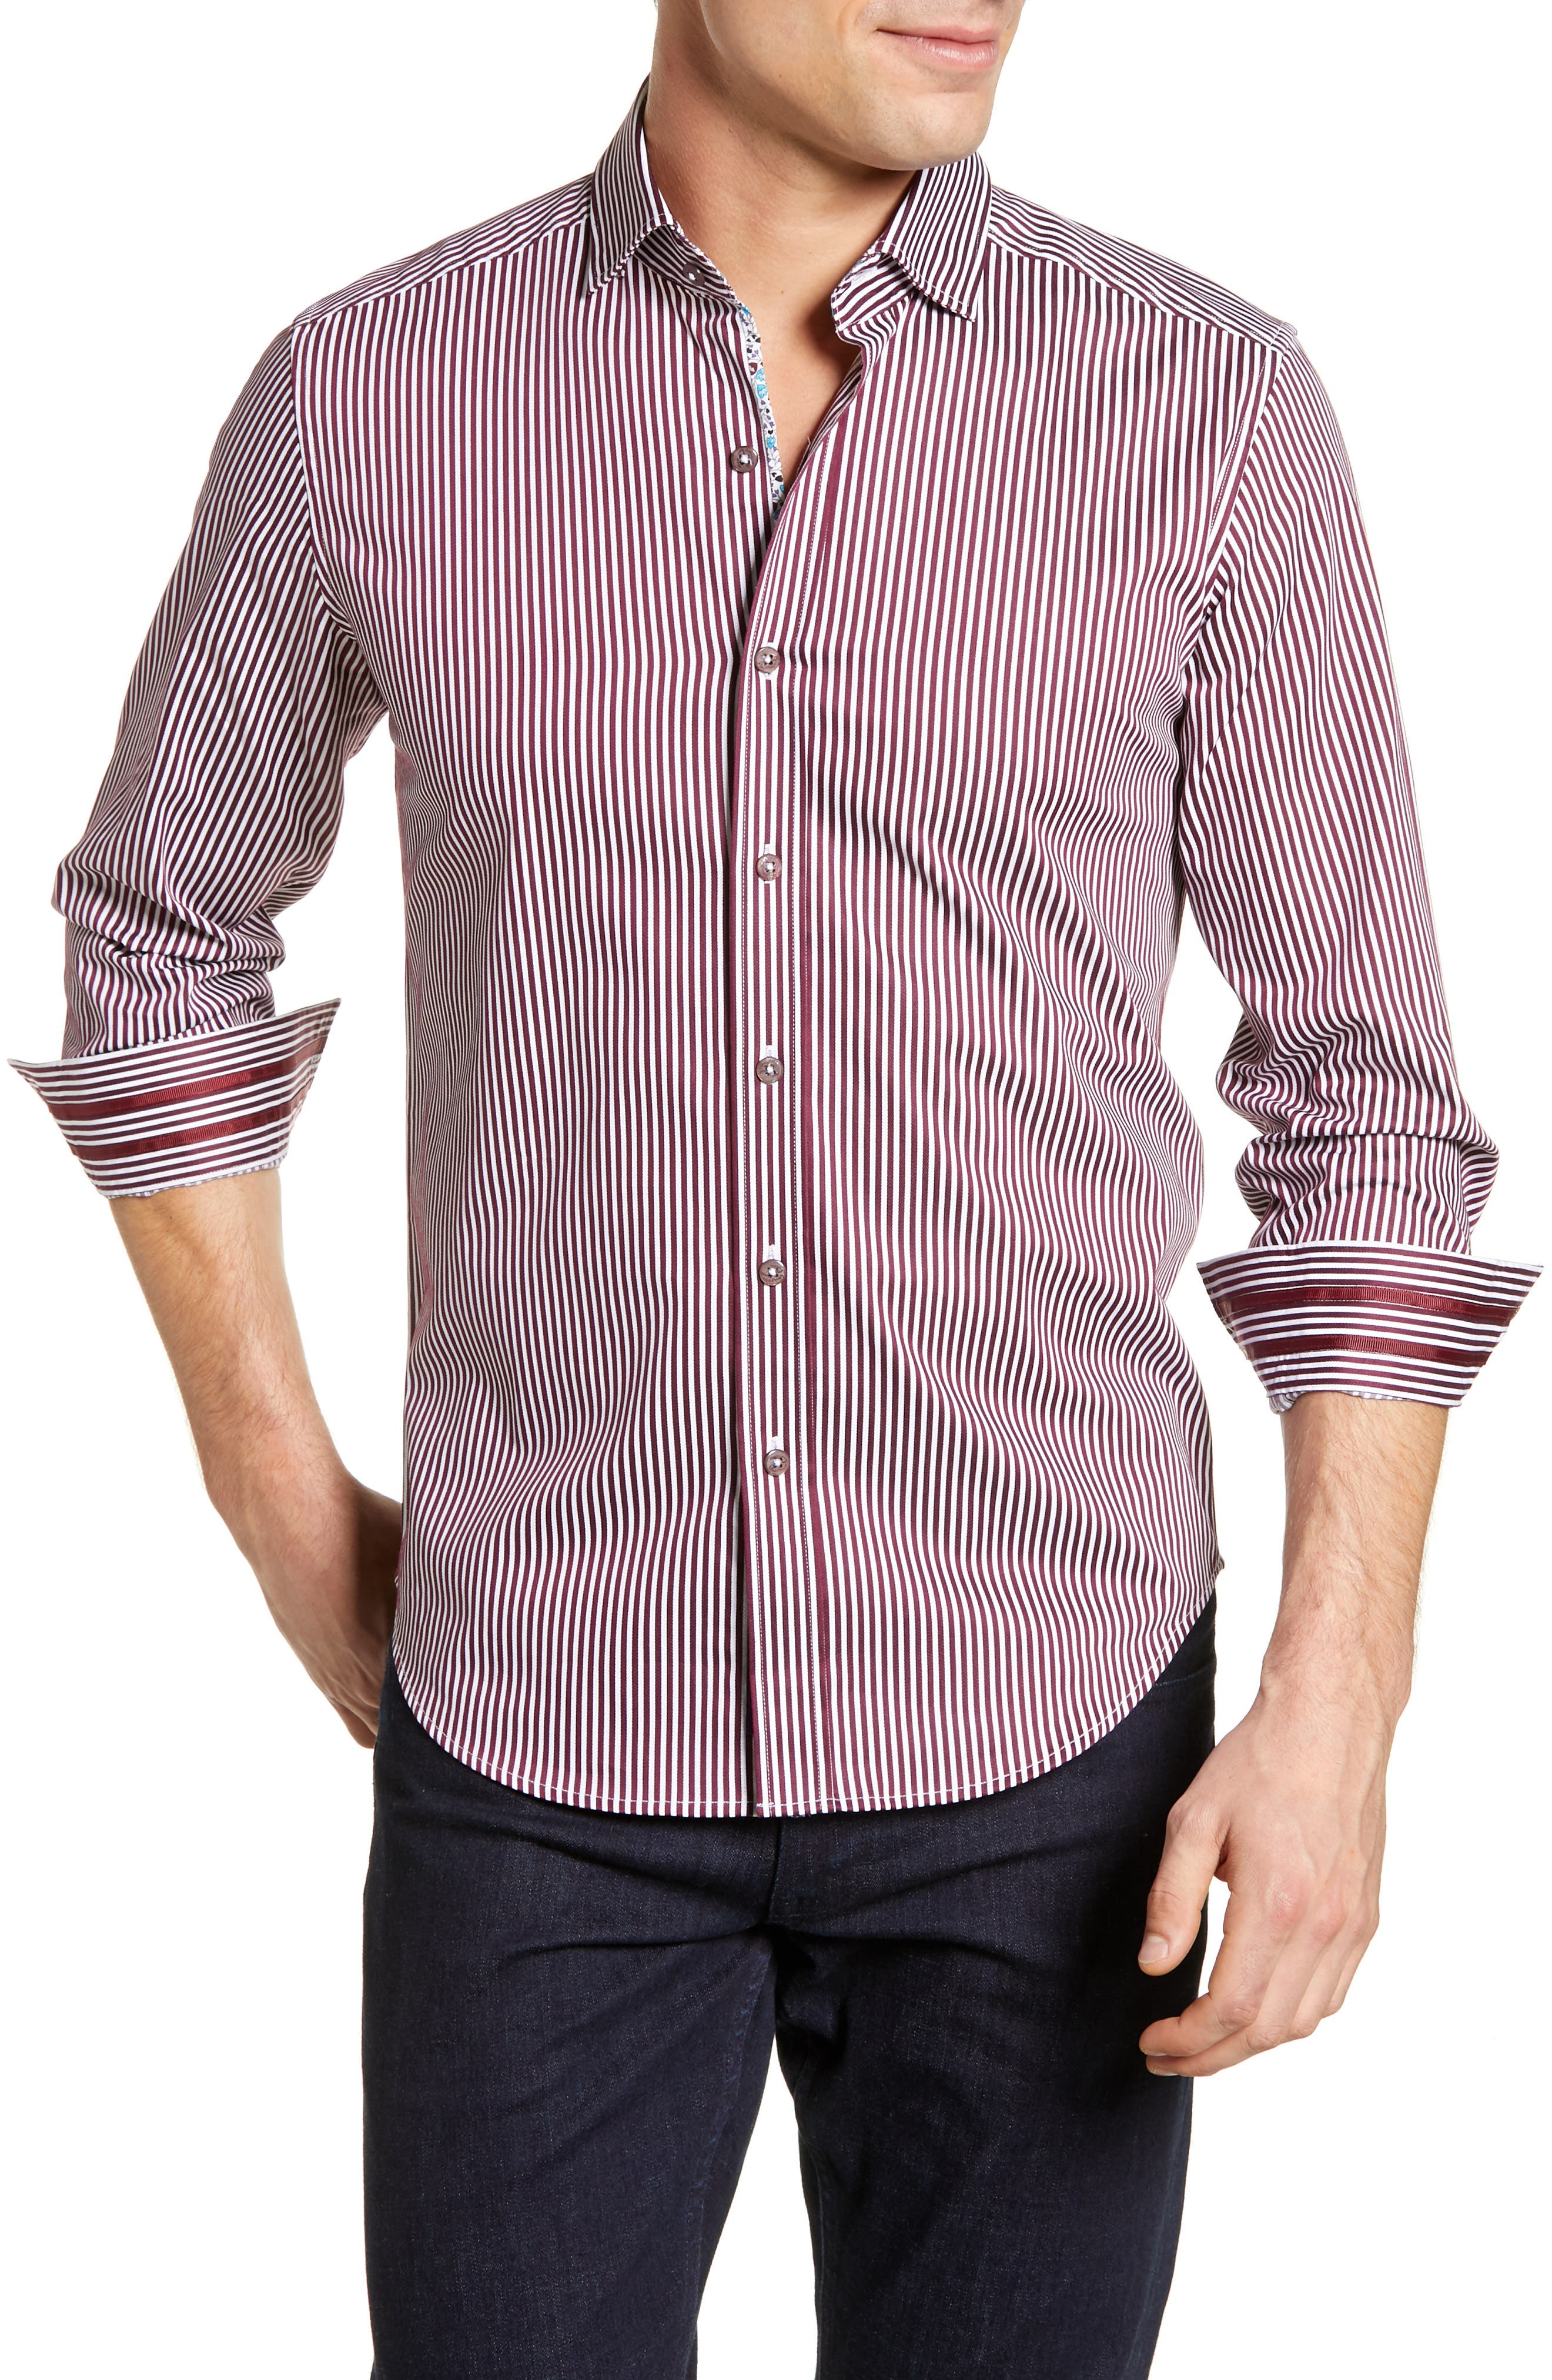 Luther Classic Fit Stripe Sport Shirt,                             Main thumbnail 1, color,                             BURGUNDY